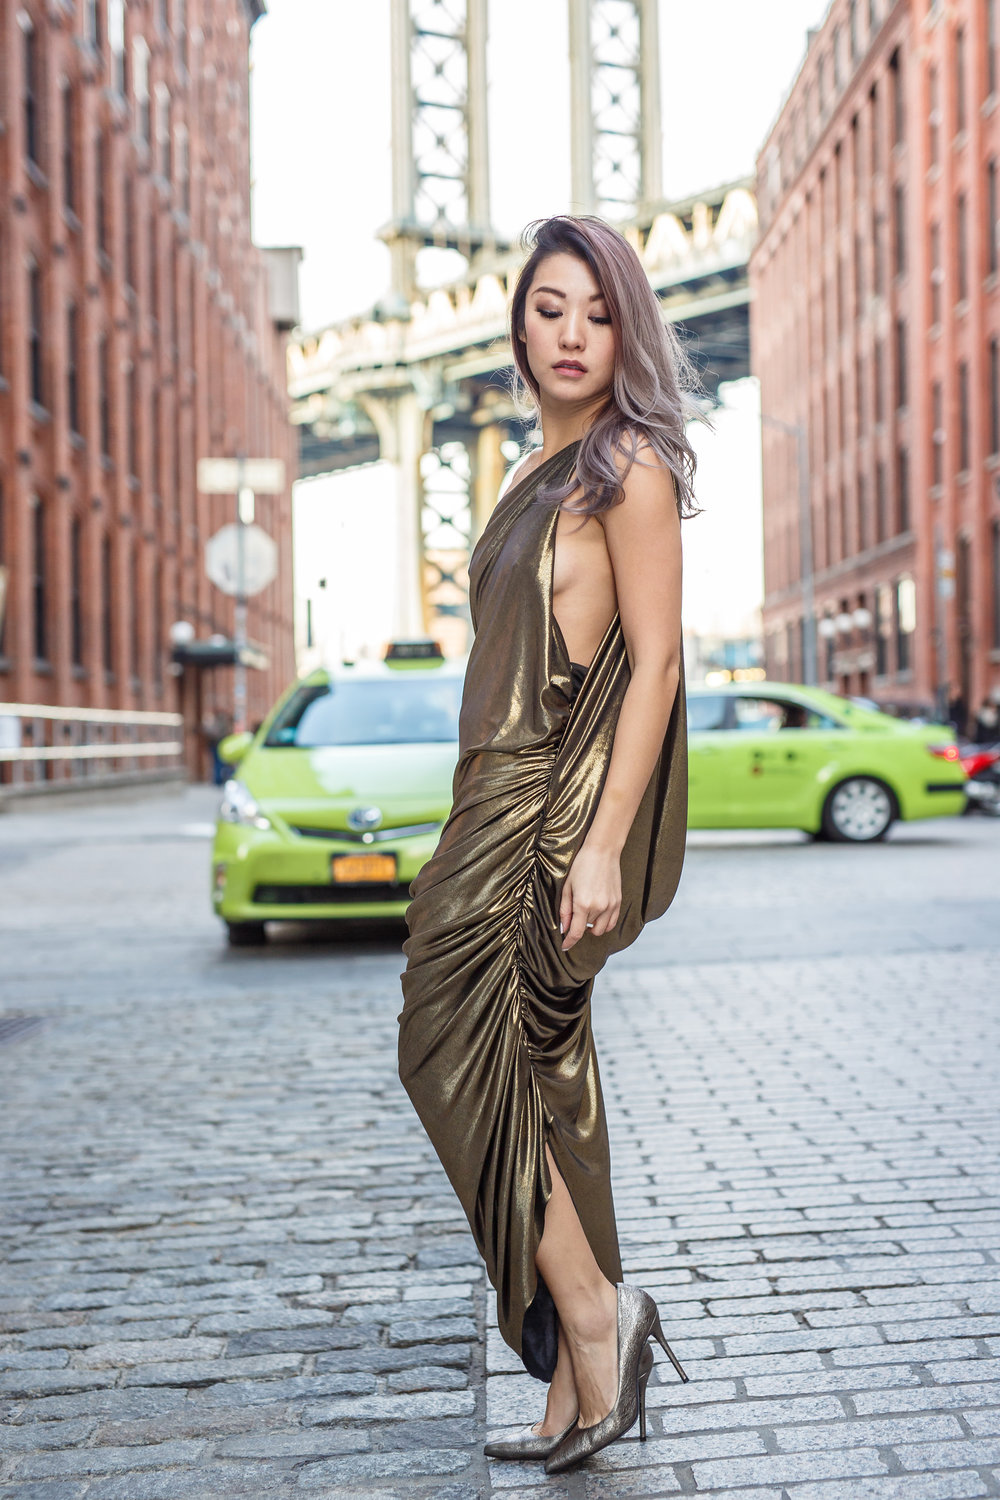 gold-goddess-dress-designed-by-NYC-fashion-designer-minika-ko